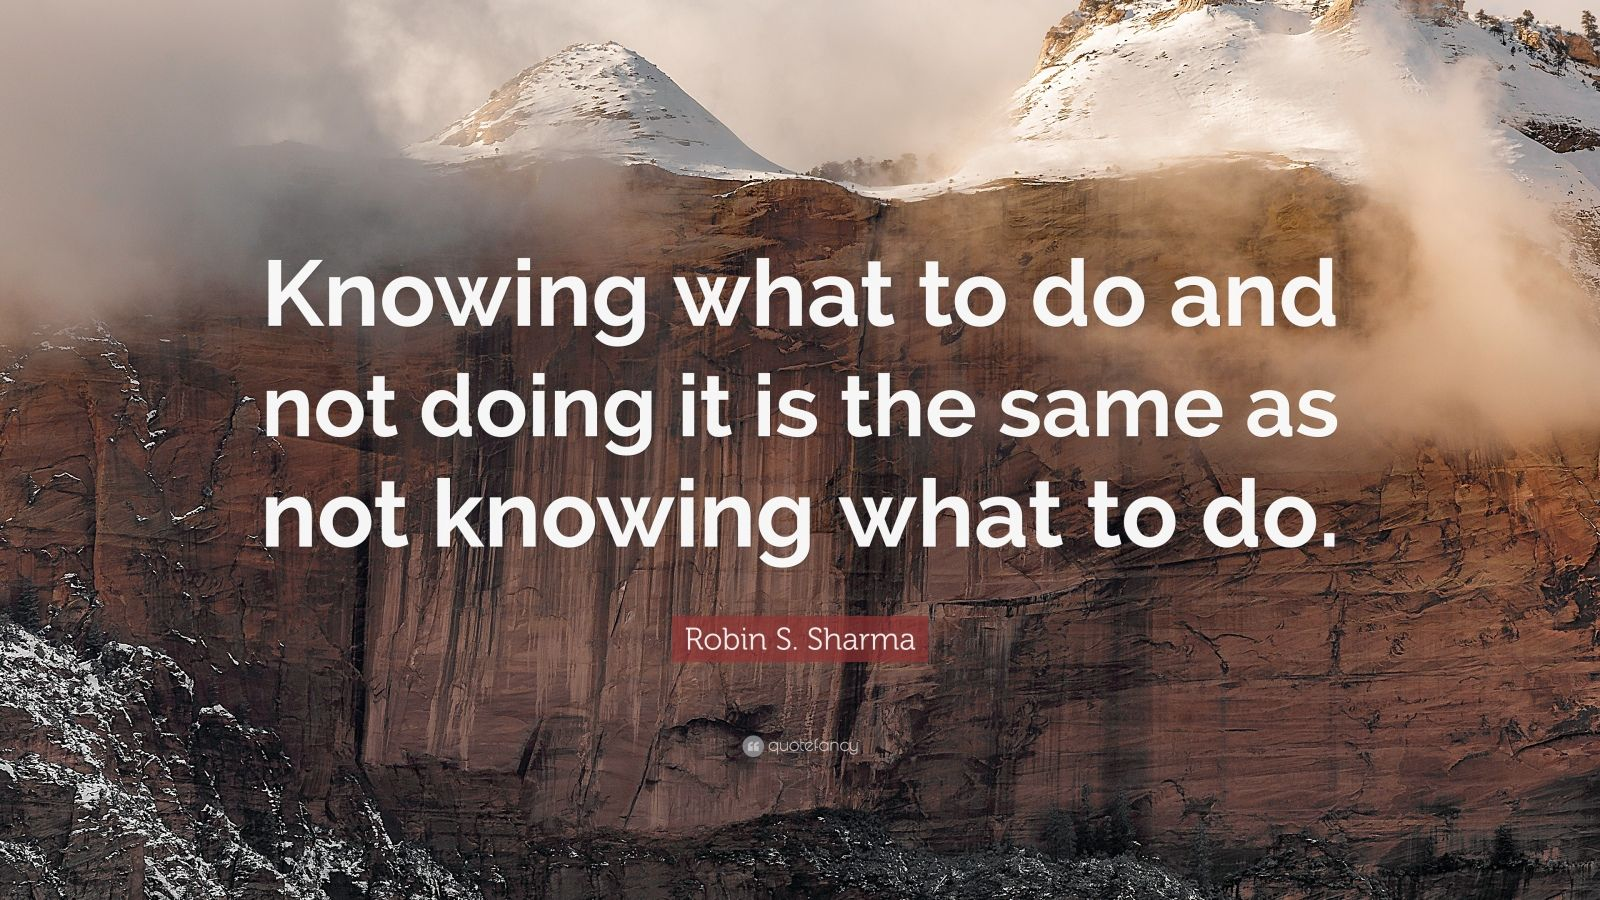 Theodore Roosevelt Quotes Wallpaper Robin S Sharma Quote Knowing What To Do And Not Doing